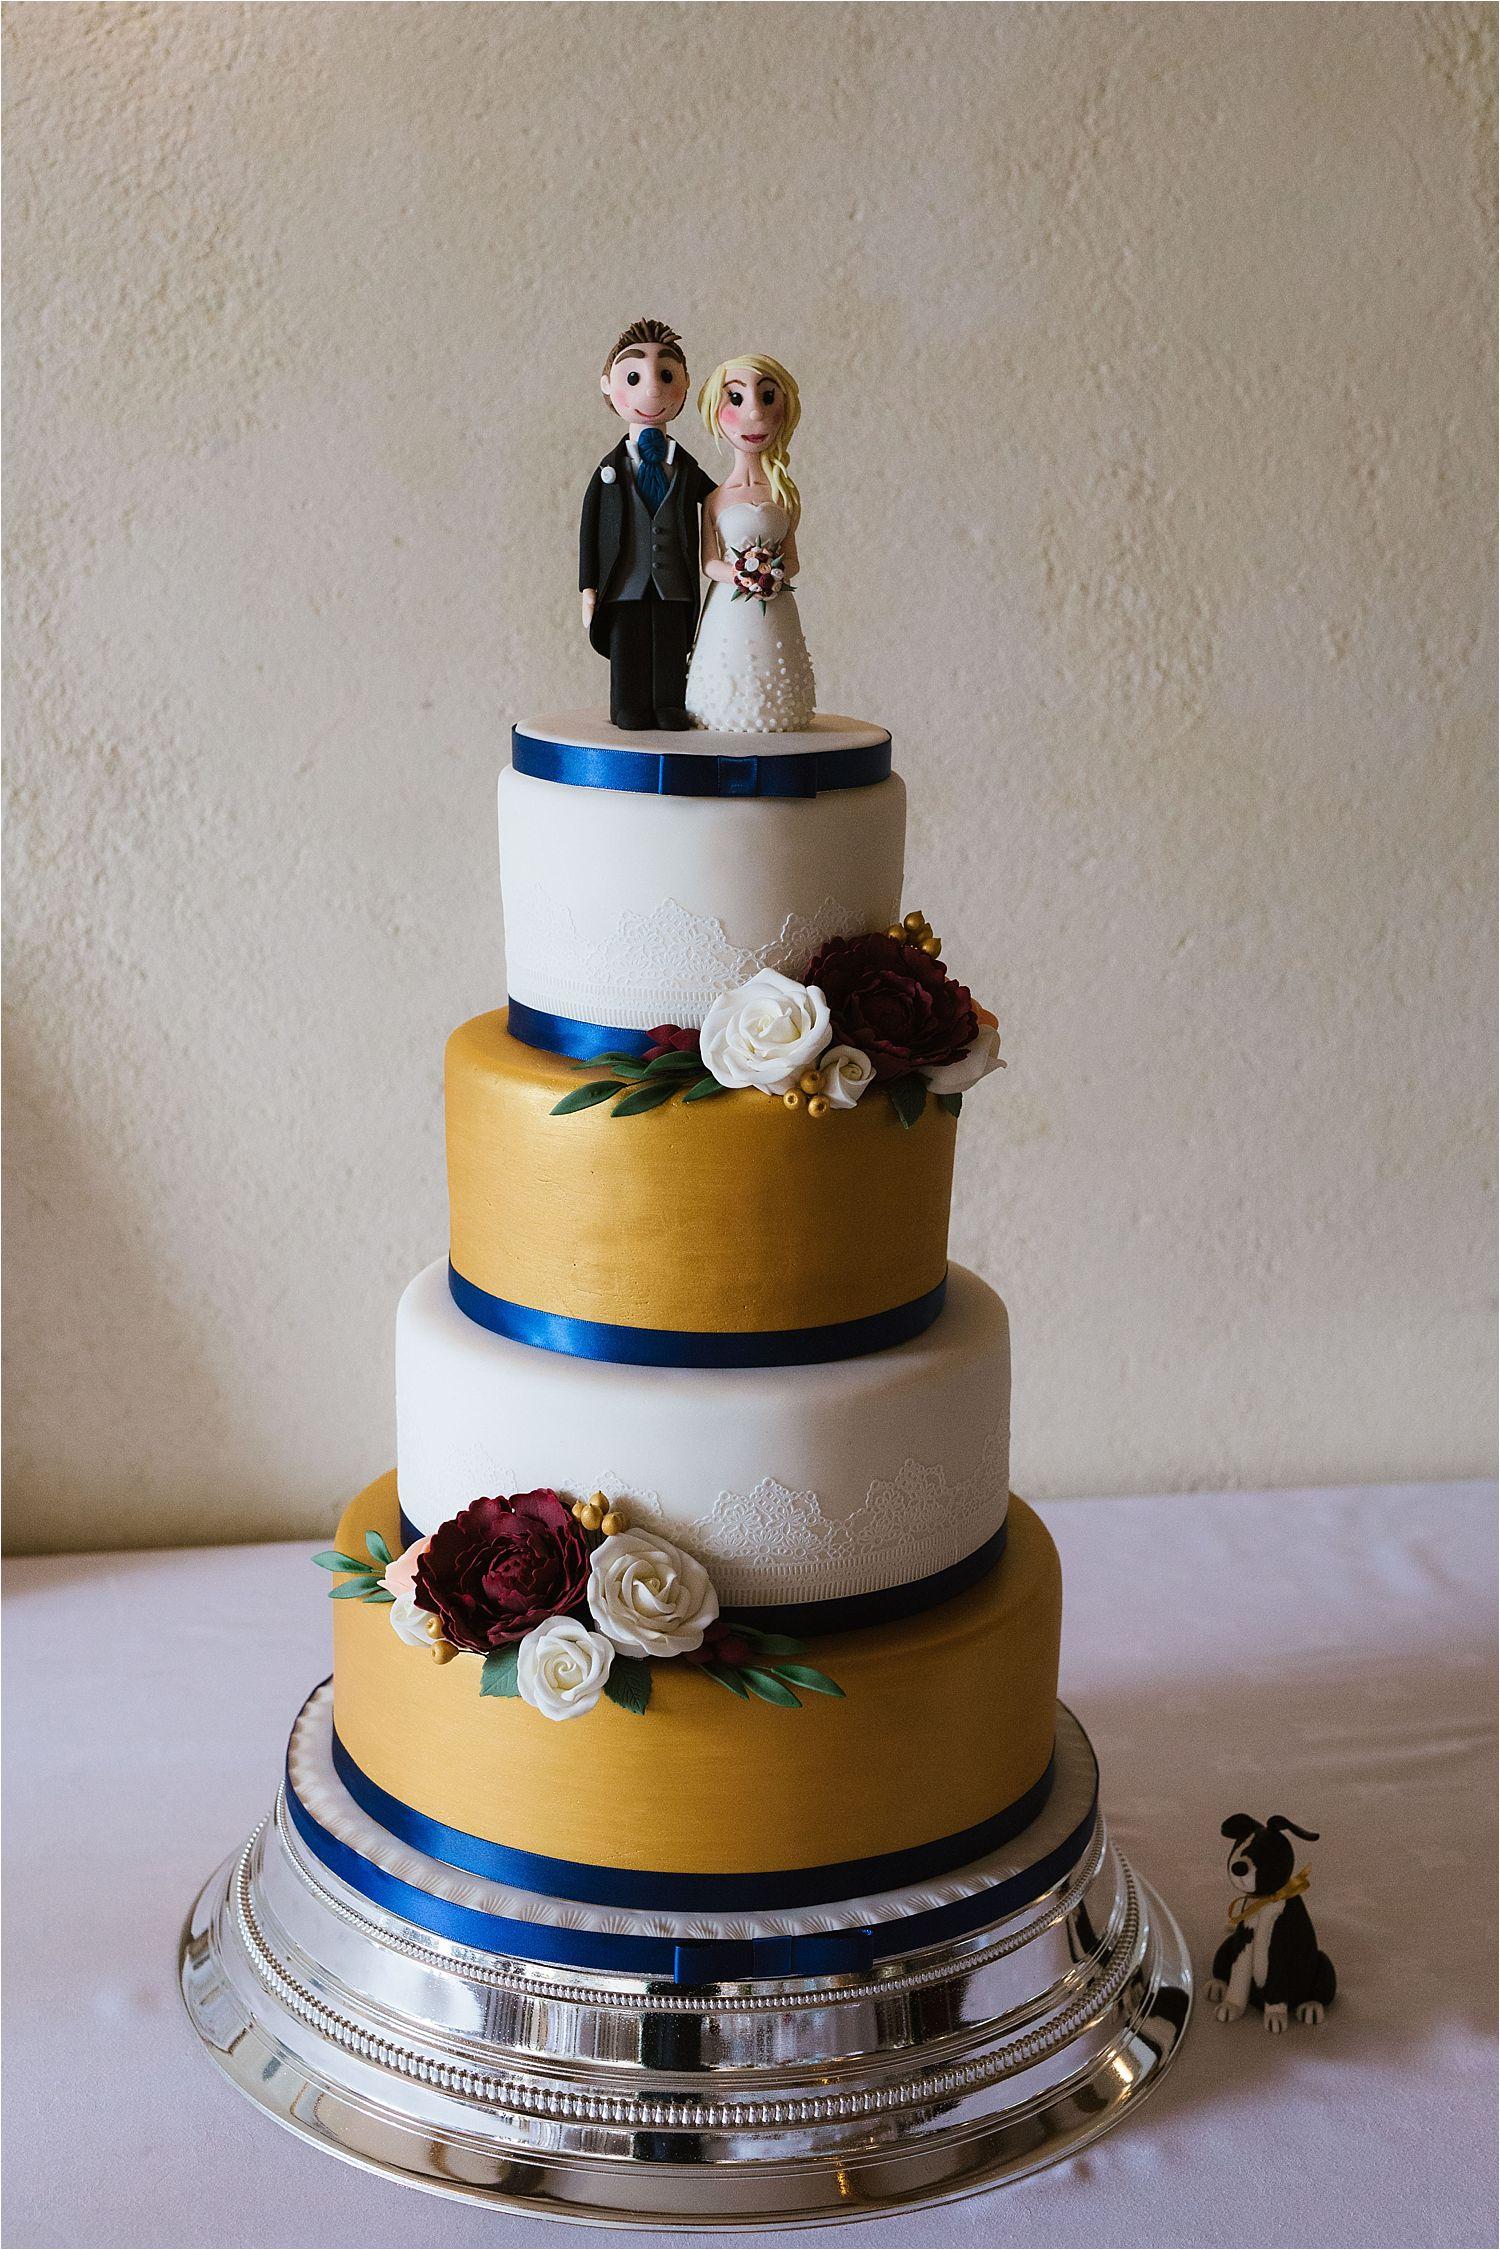 Wedding cake with couple figurines for Belmount Hall wedding